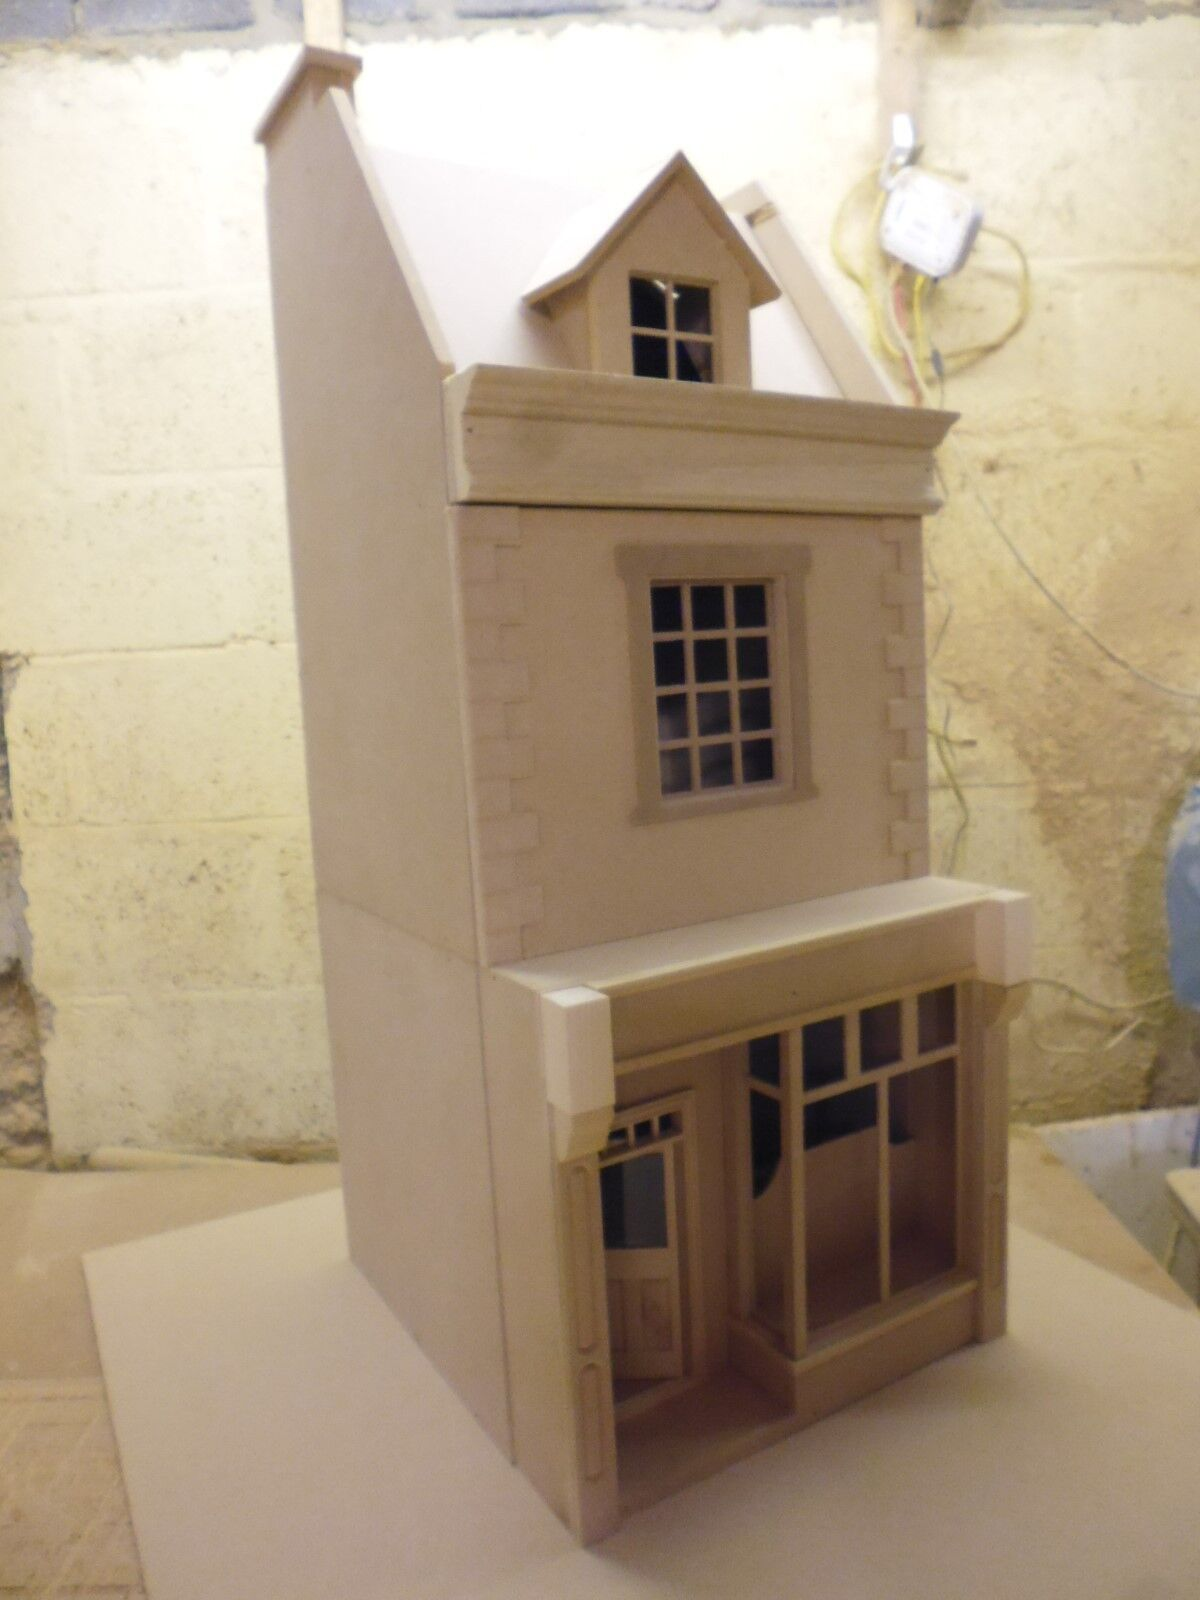 Dolls House 1 12 scale scale scale Fore Street Store kit by Dolls House Direct 094428